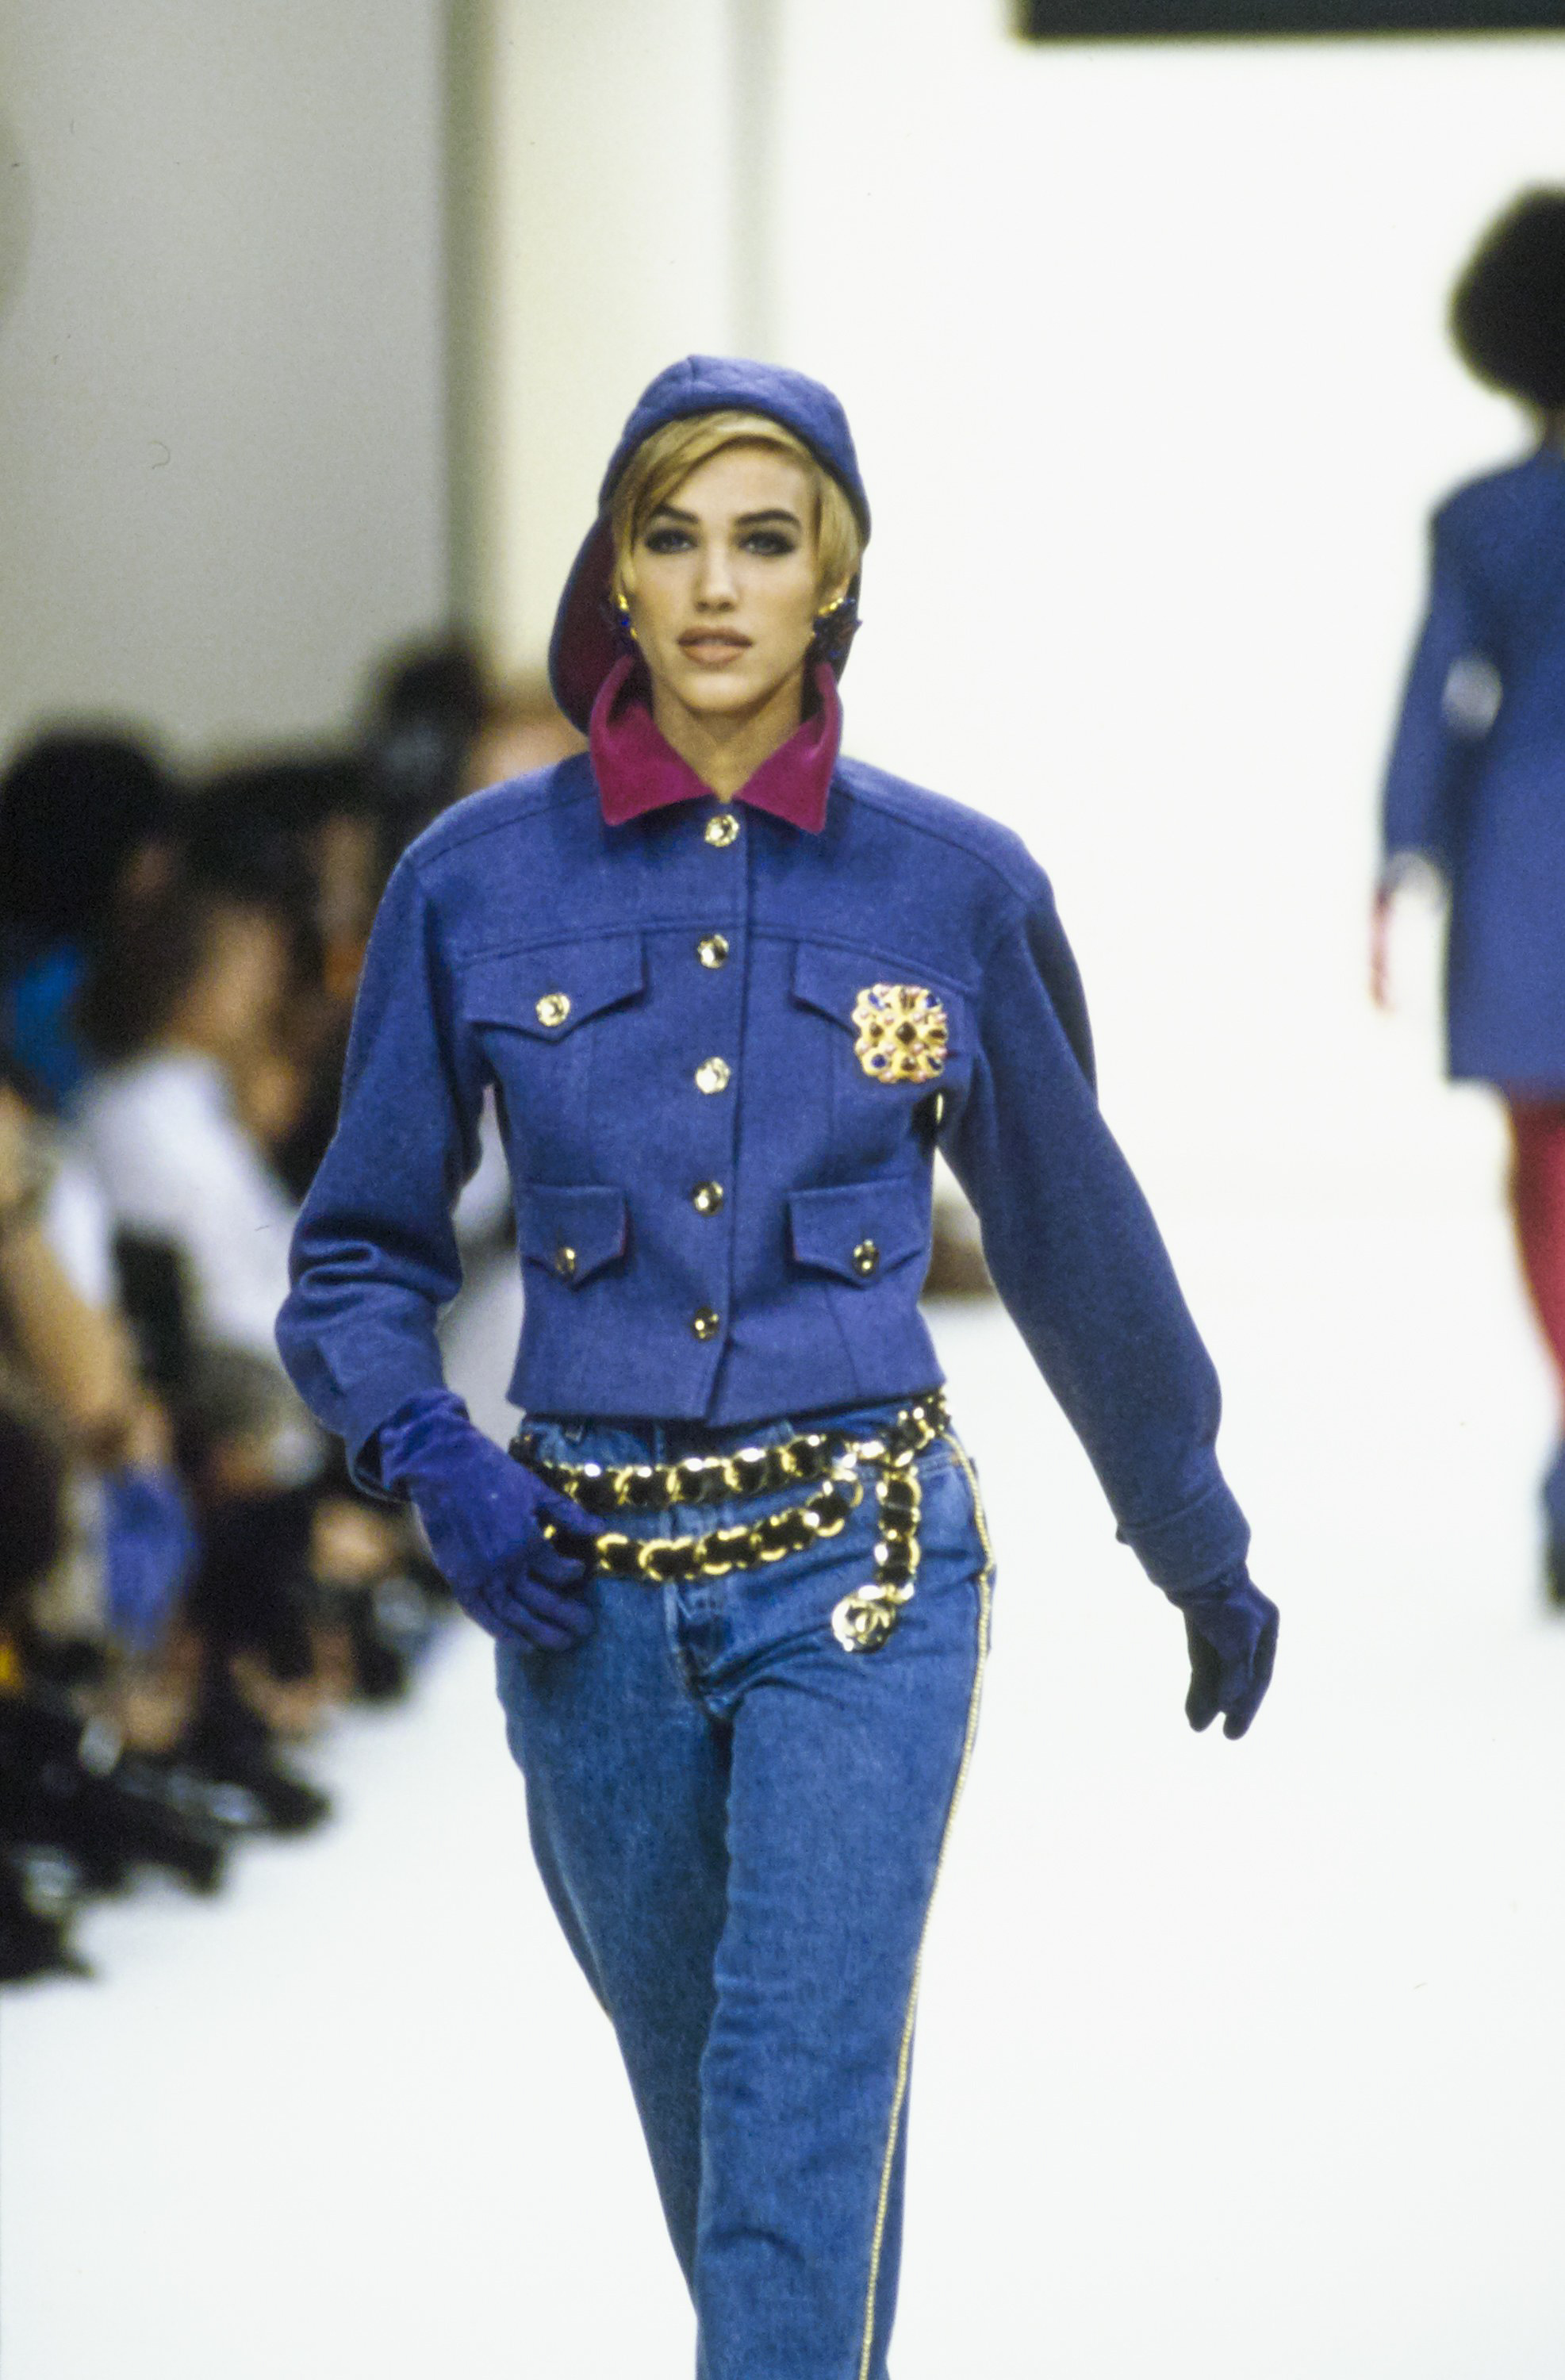 chanel in the 90's - chanel-fall-1991-ready-to-wear-CN10052937-emma-sjoberg-wiklund